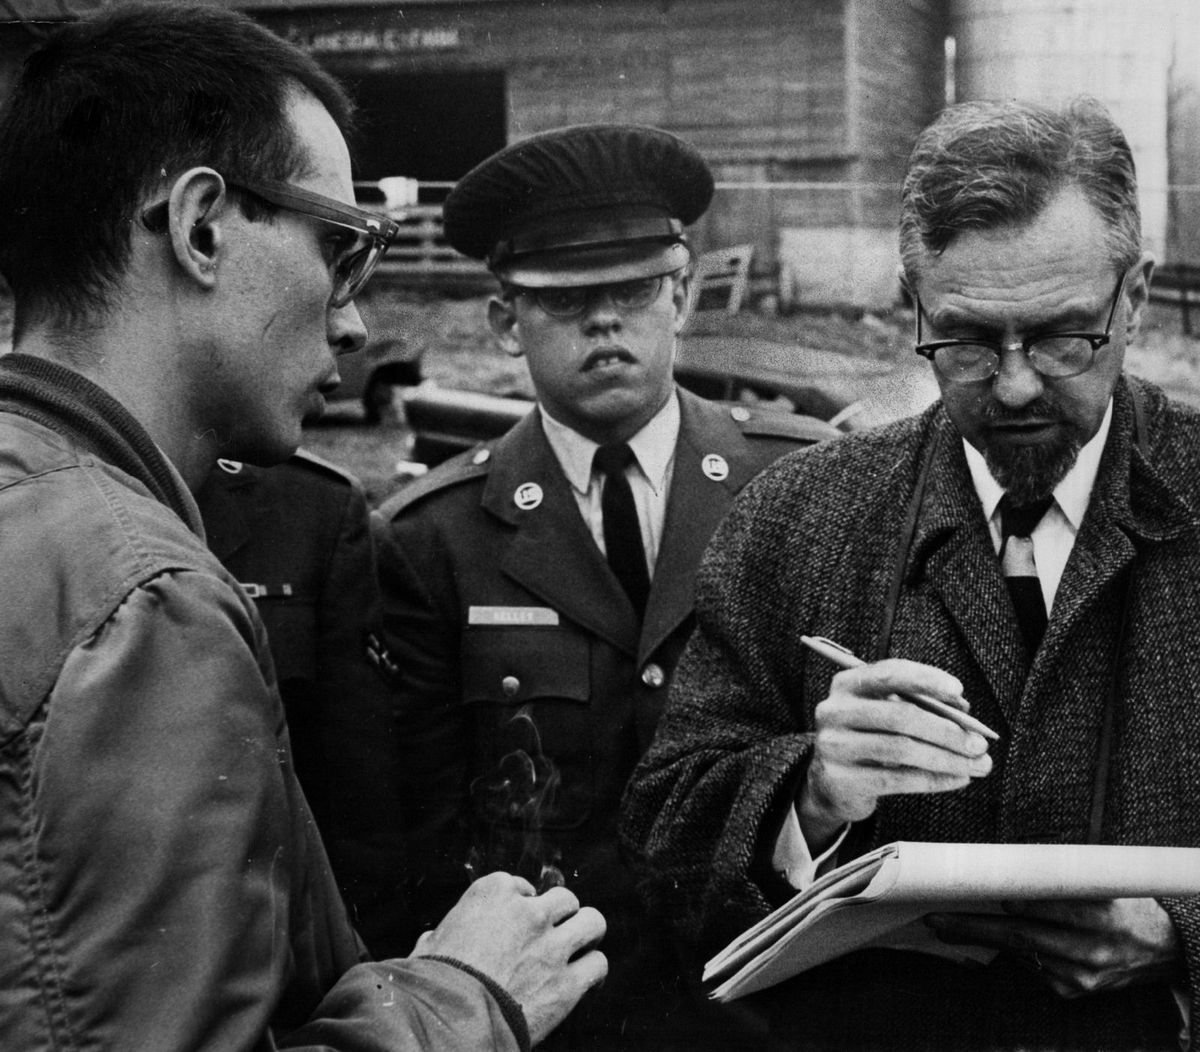 J. Allen Hynek in 1966, taking notes on a reported UFO sighting in Michigan. Before coming to Northwestern University, where he chaired the astronomy department, his past posts included having been associate director of the Smithsonian Astrophysical Observatory at Harvard University.